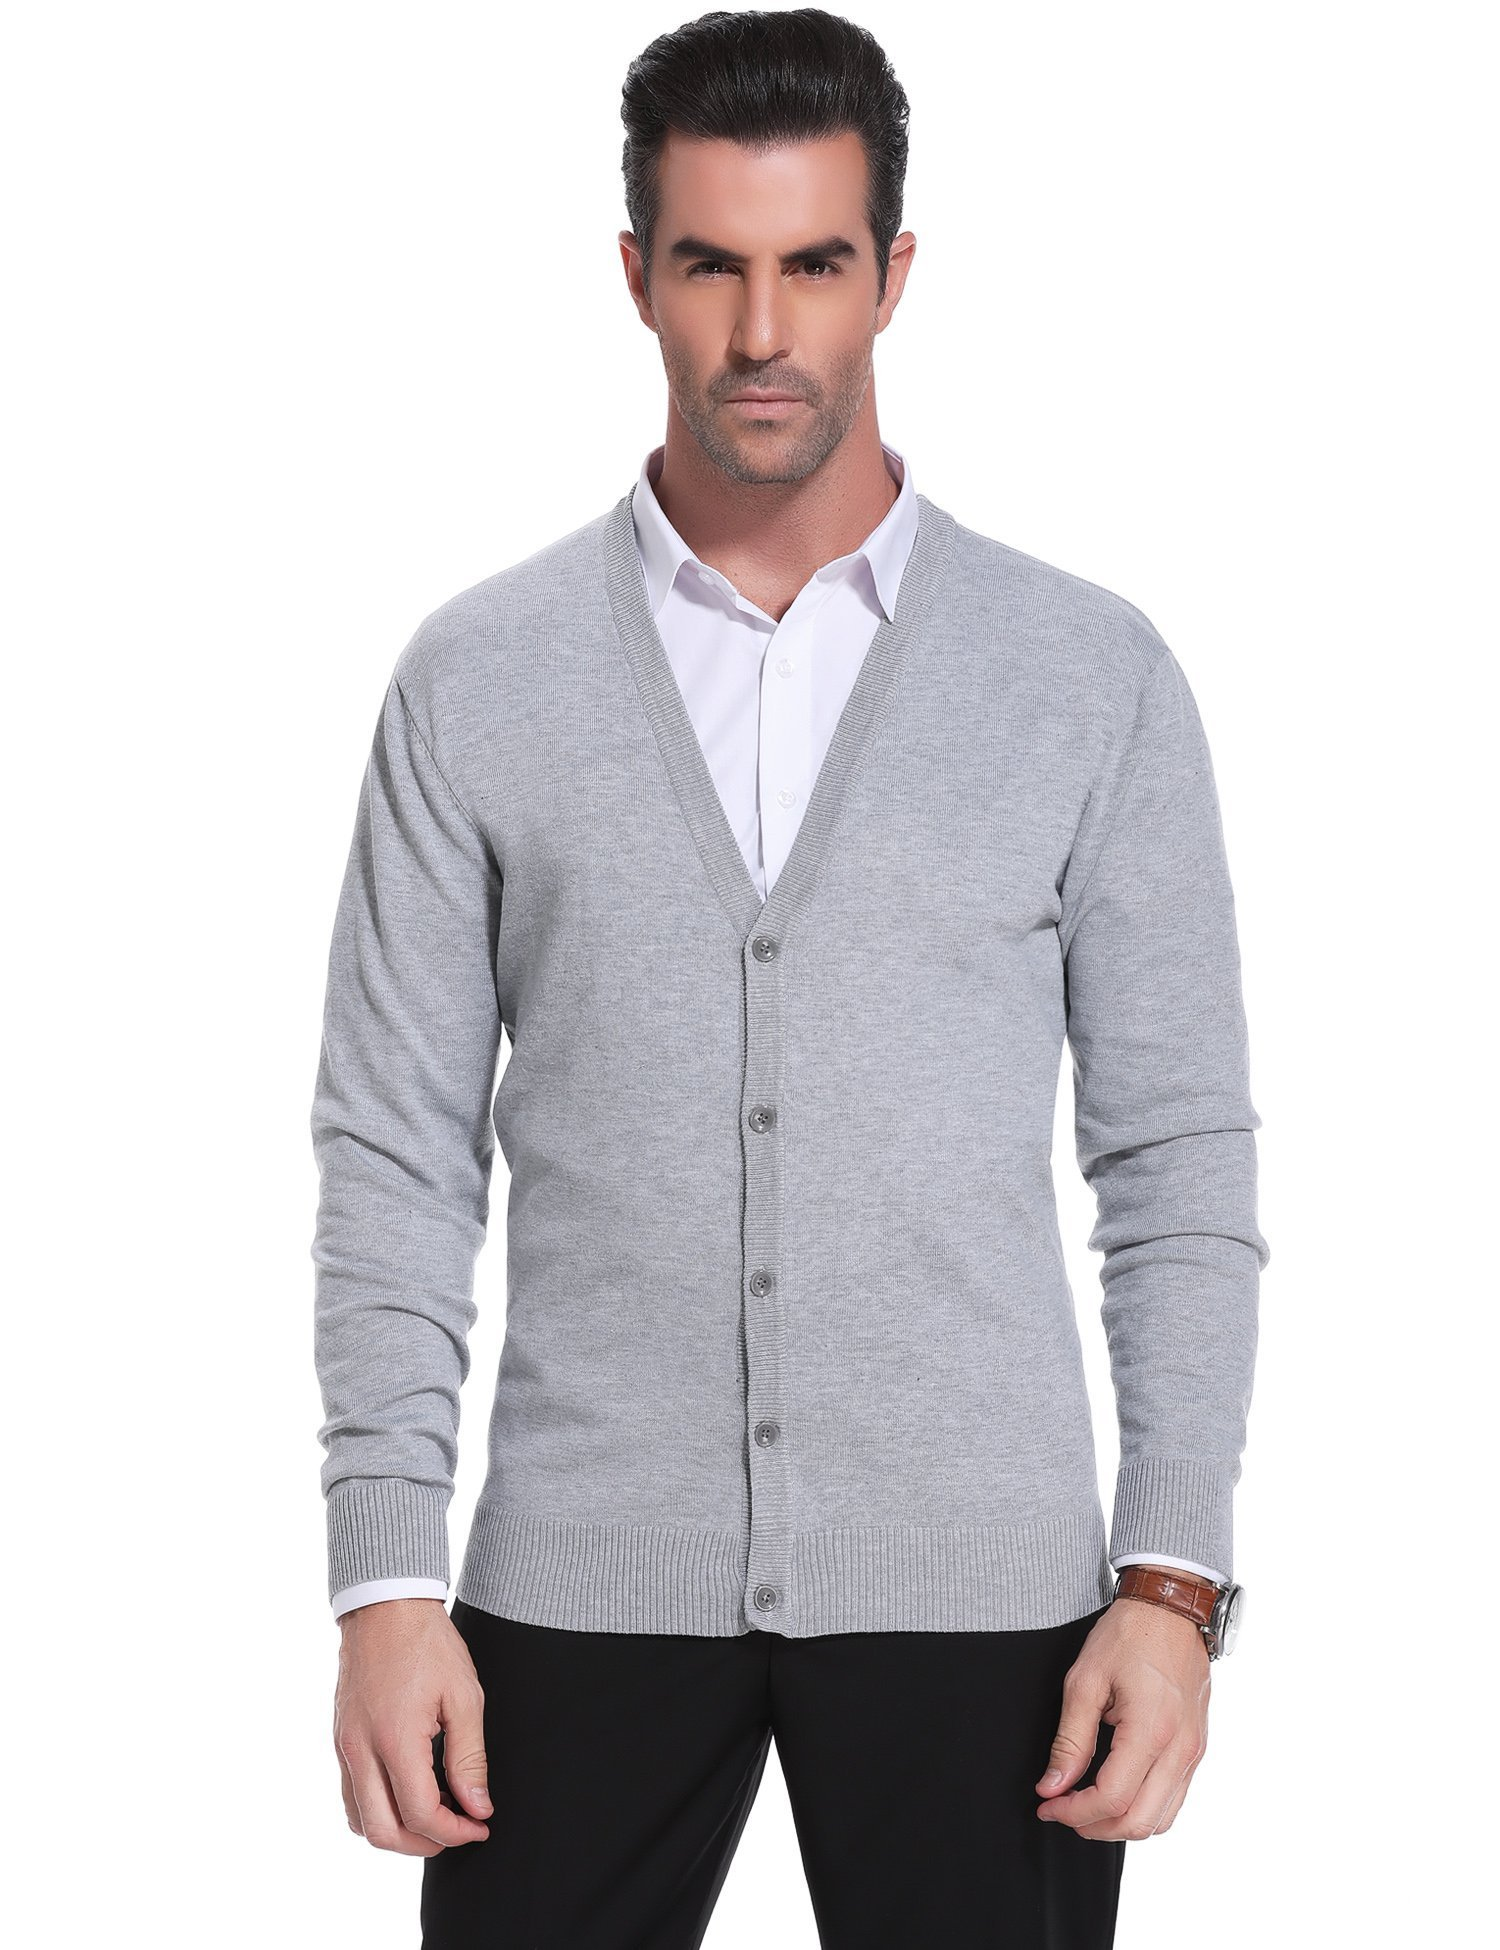 iClosam Mens Casual V-Neck Slim Fit Basic Long Sleeve Button Down Cardigan